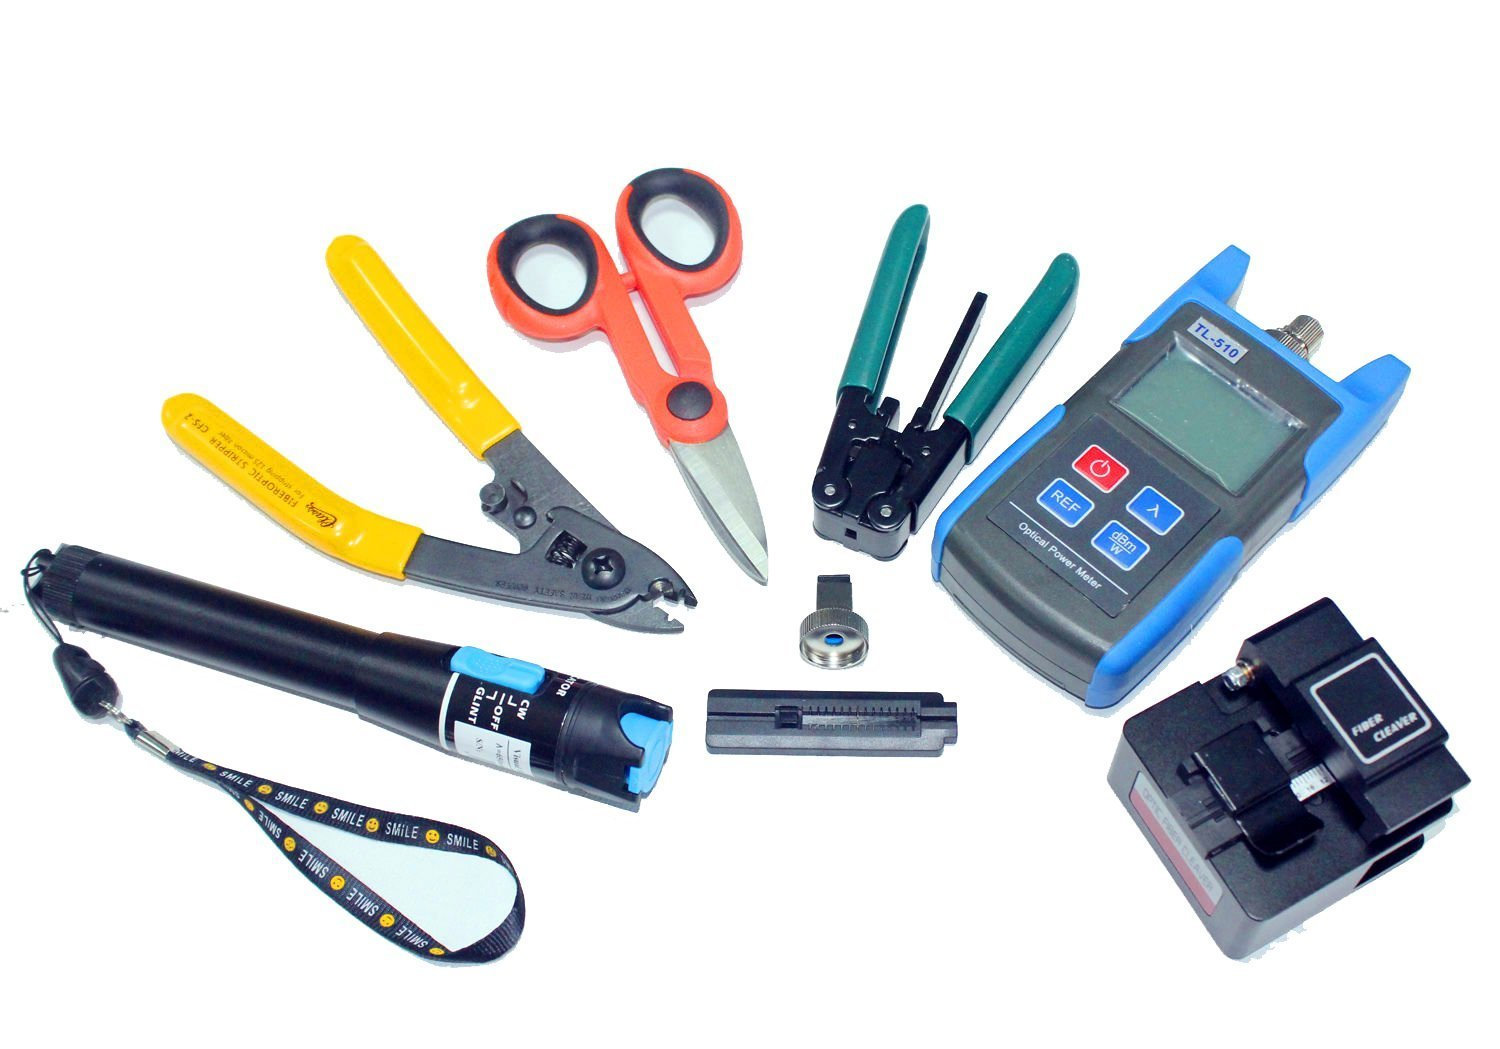 Multi-Purpose Fiber Optic Tool Kit Include Fiber Optic Cable Tester Visual Fault Locator Portable Optical Power Meter,Assembly Fiber Termination Tool Optic Connector Kit